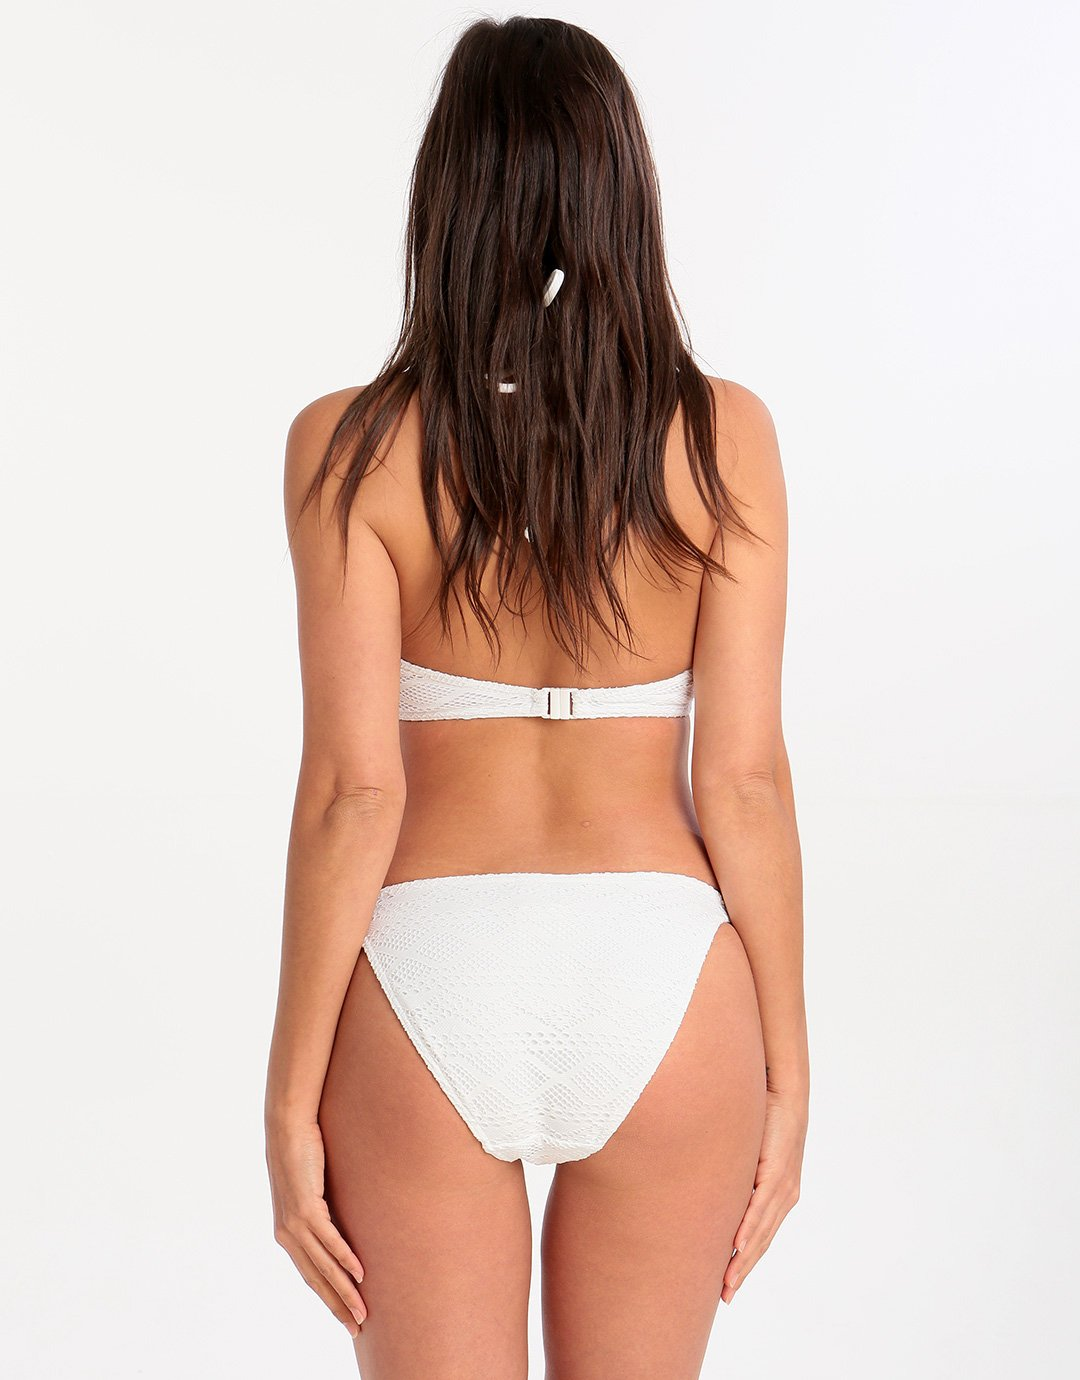 Freya Sundance Rio Brief - White